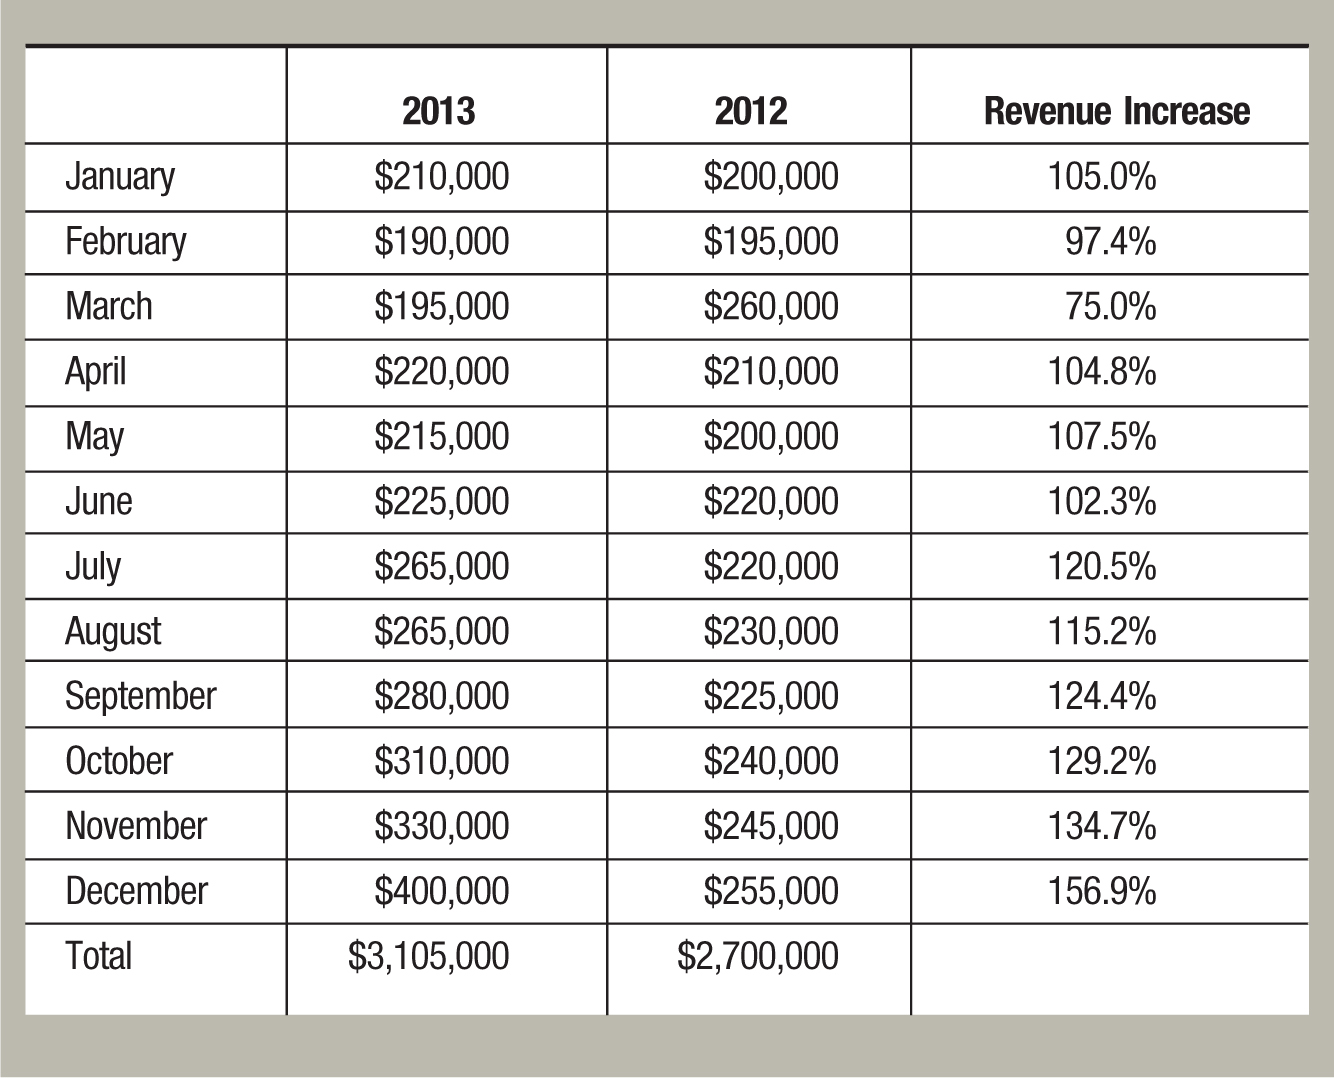 2013; 2012; Revenue Increase January; $210,000; $200,000; 105.0% February; $190,000; $195,000; 97.4% March; $195,000; $260,000; 75.0% April; $220,000; $210,000; 104.8% May; $215,000; $200,000; 107.5% June; $225,000; $220,000; 102.3% July; $265,000; $220,000; 120.5% August; $265,000; $230,000; 115.2% September; $280,000; $225,000; 124.4% October; $310,000; $240,000; 129.2% November; $330,000; $245,000; 134.7% December; $400,000; $255,000; 156.9% Total; $3,105,000; $2,700,000